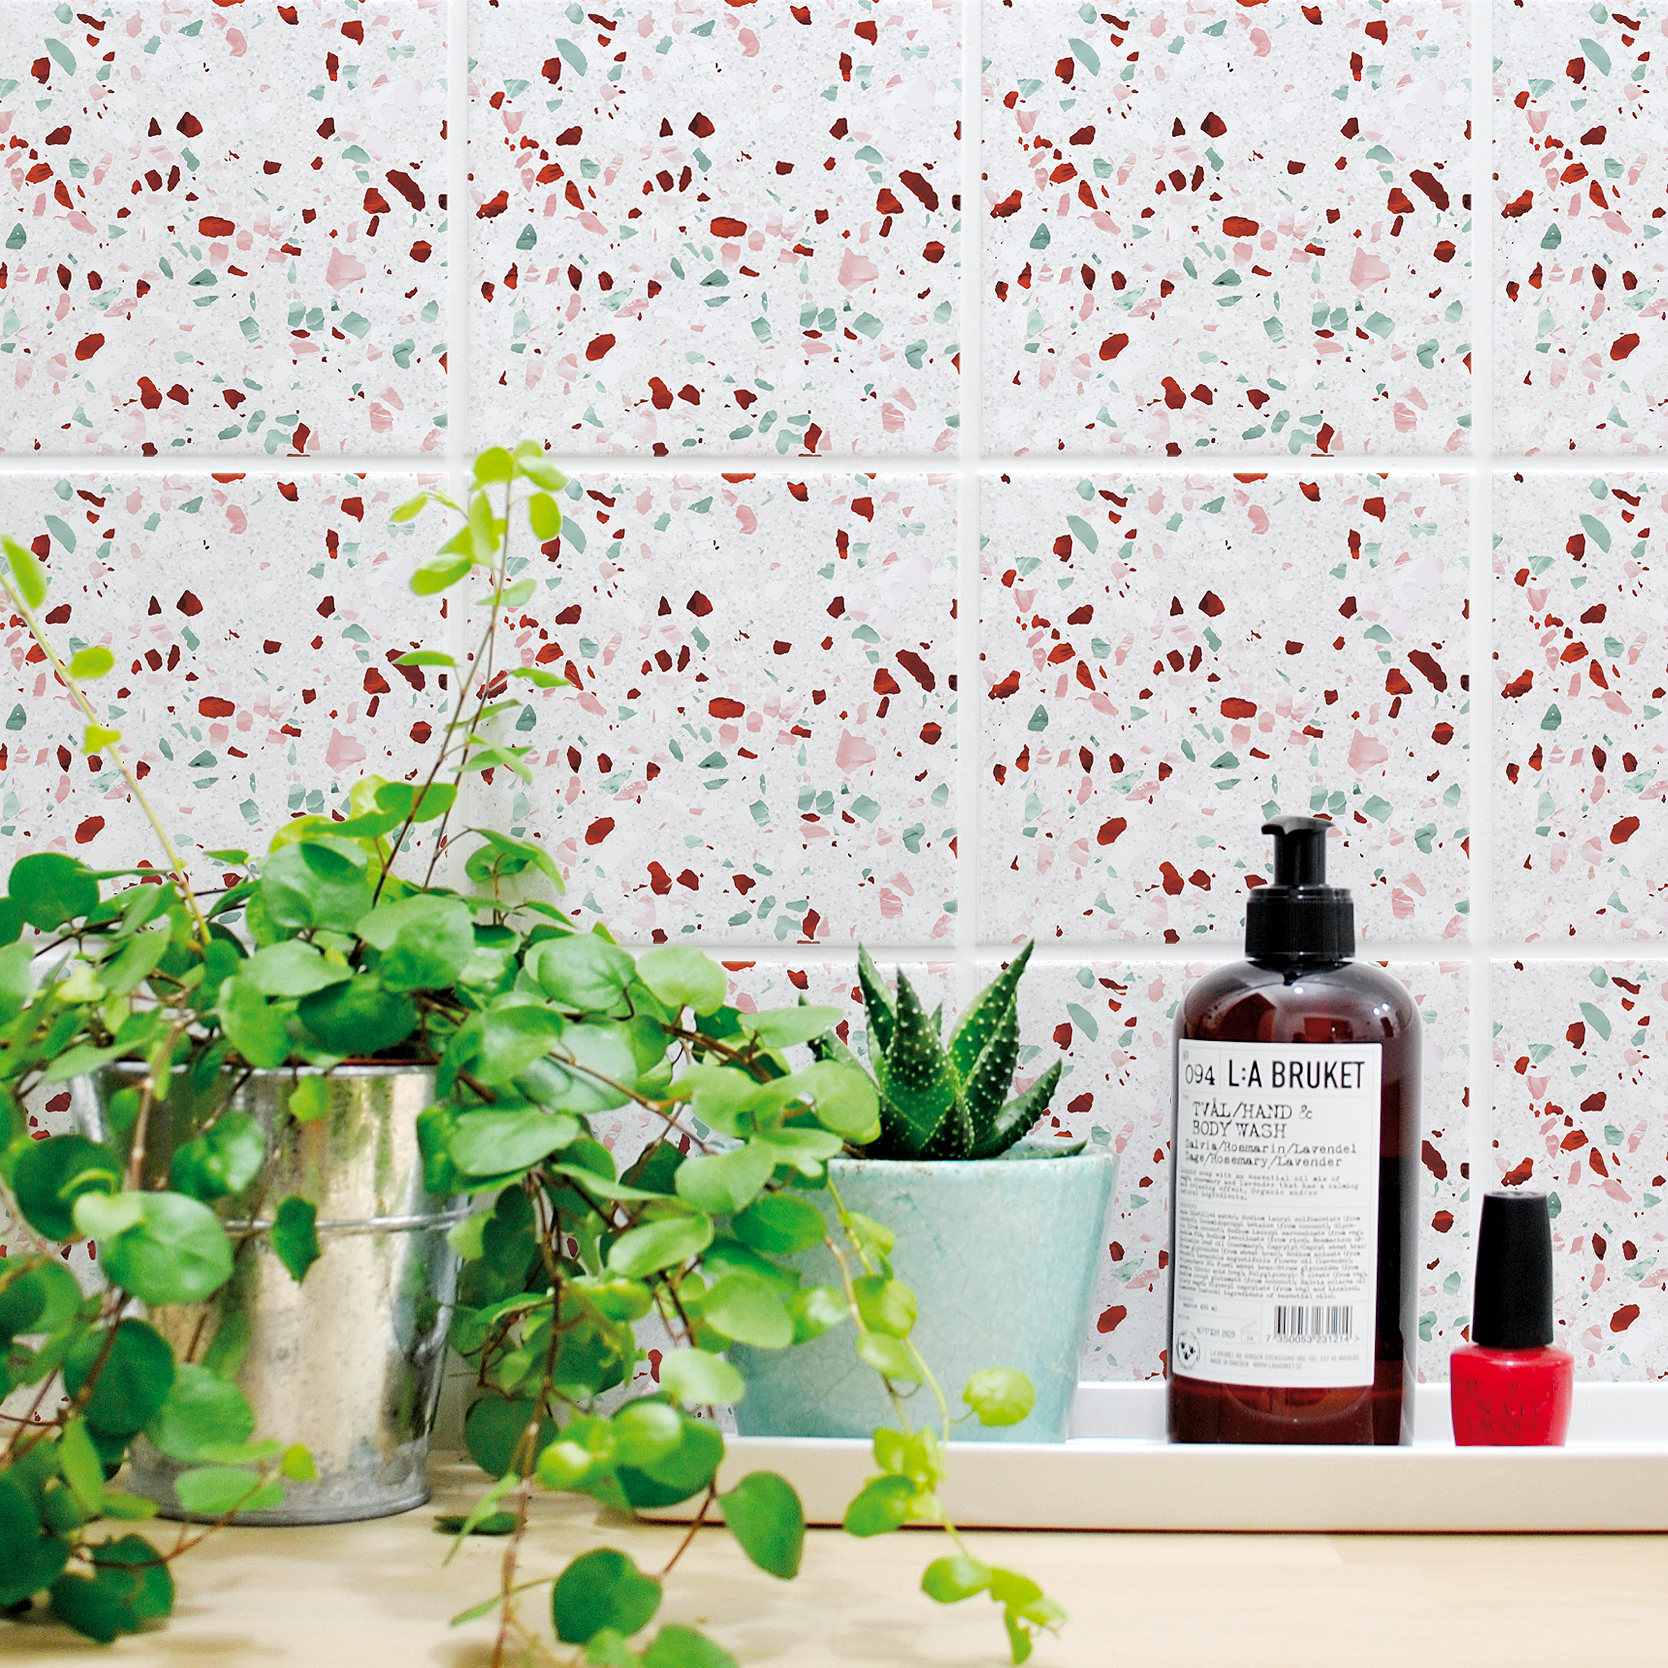 Terrazzo Tile stickers from Etsy